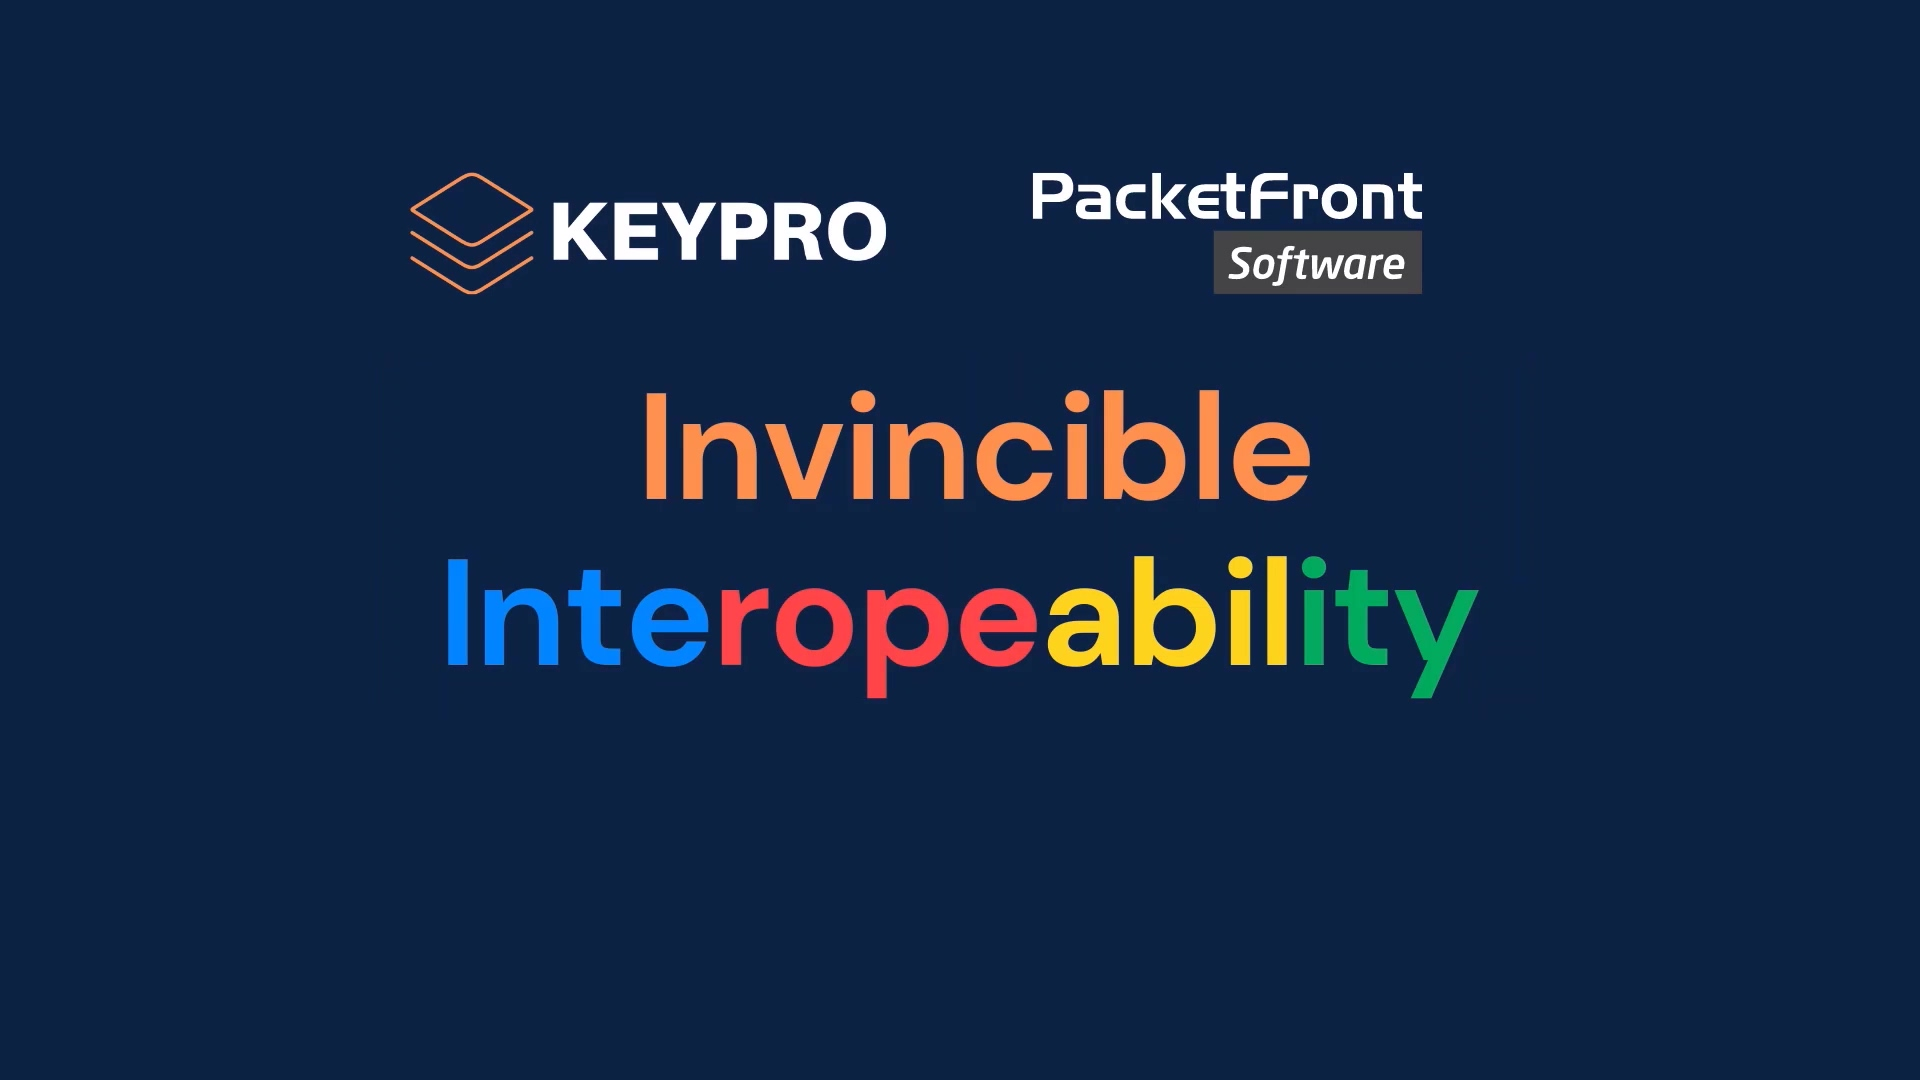 PacketFront - Invincible Interoperability